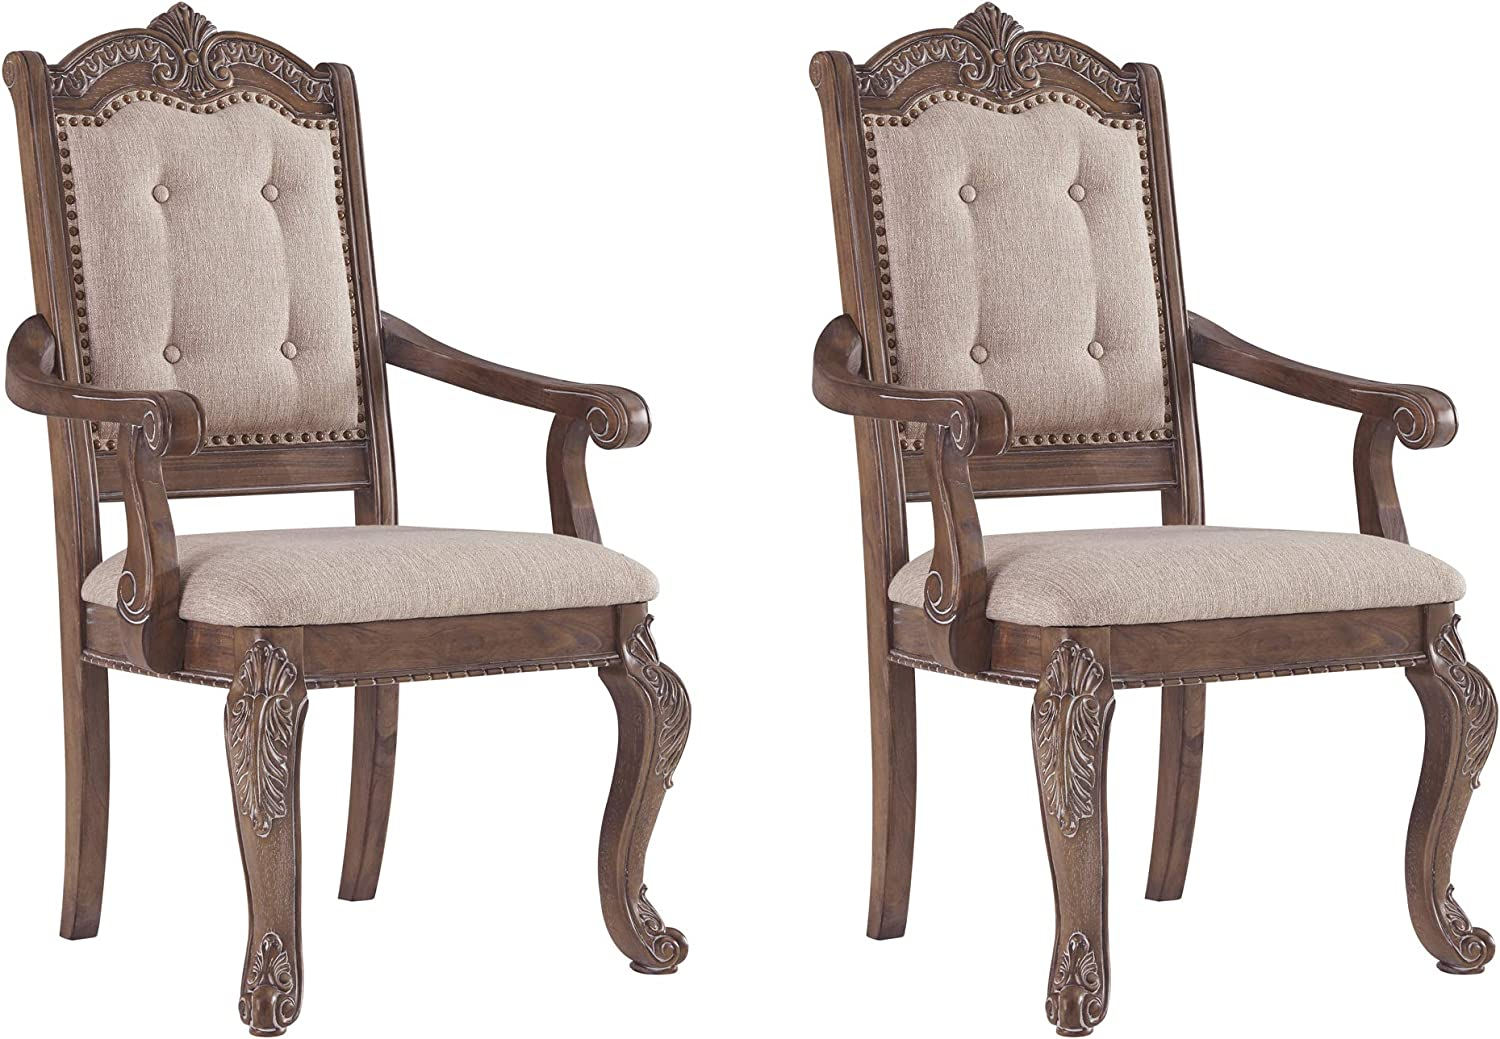 Signature Design By Ashley Charmond Dining Room Chair Brown Furniture Decor Amazon Com